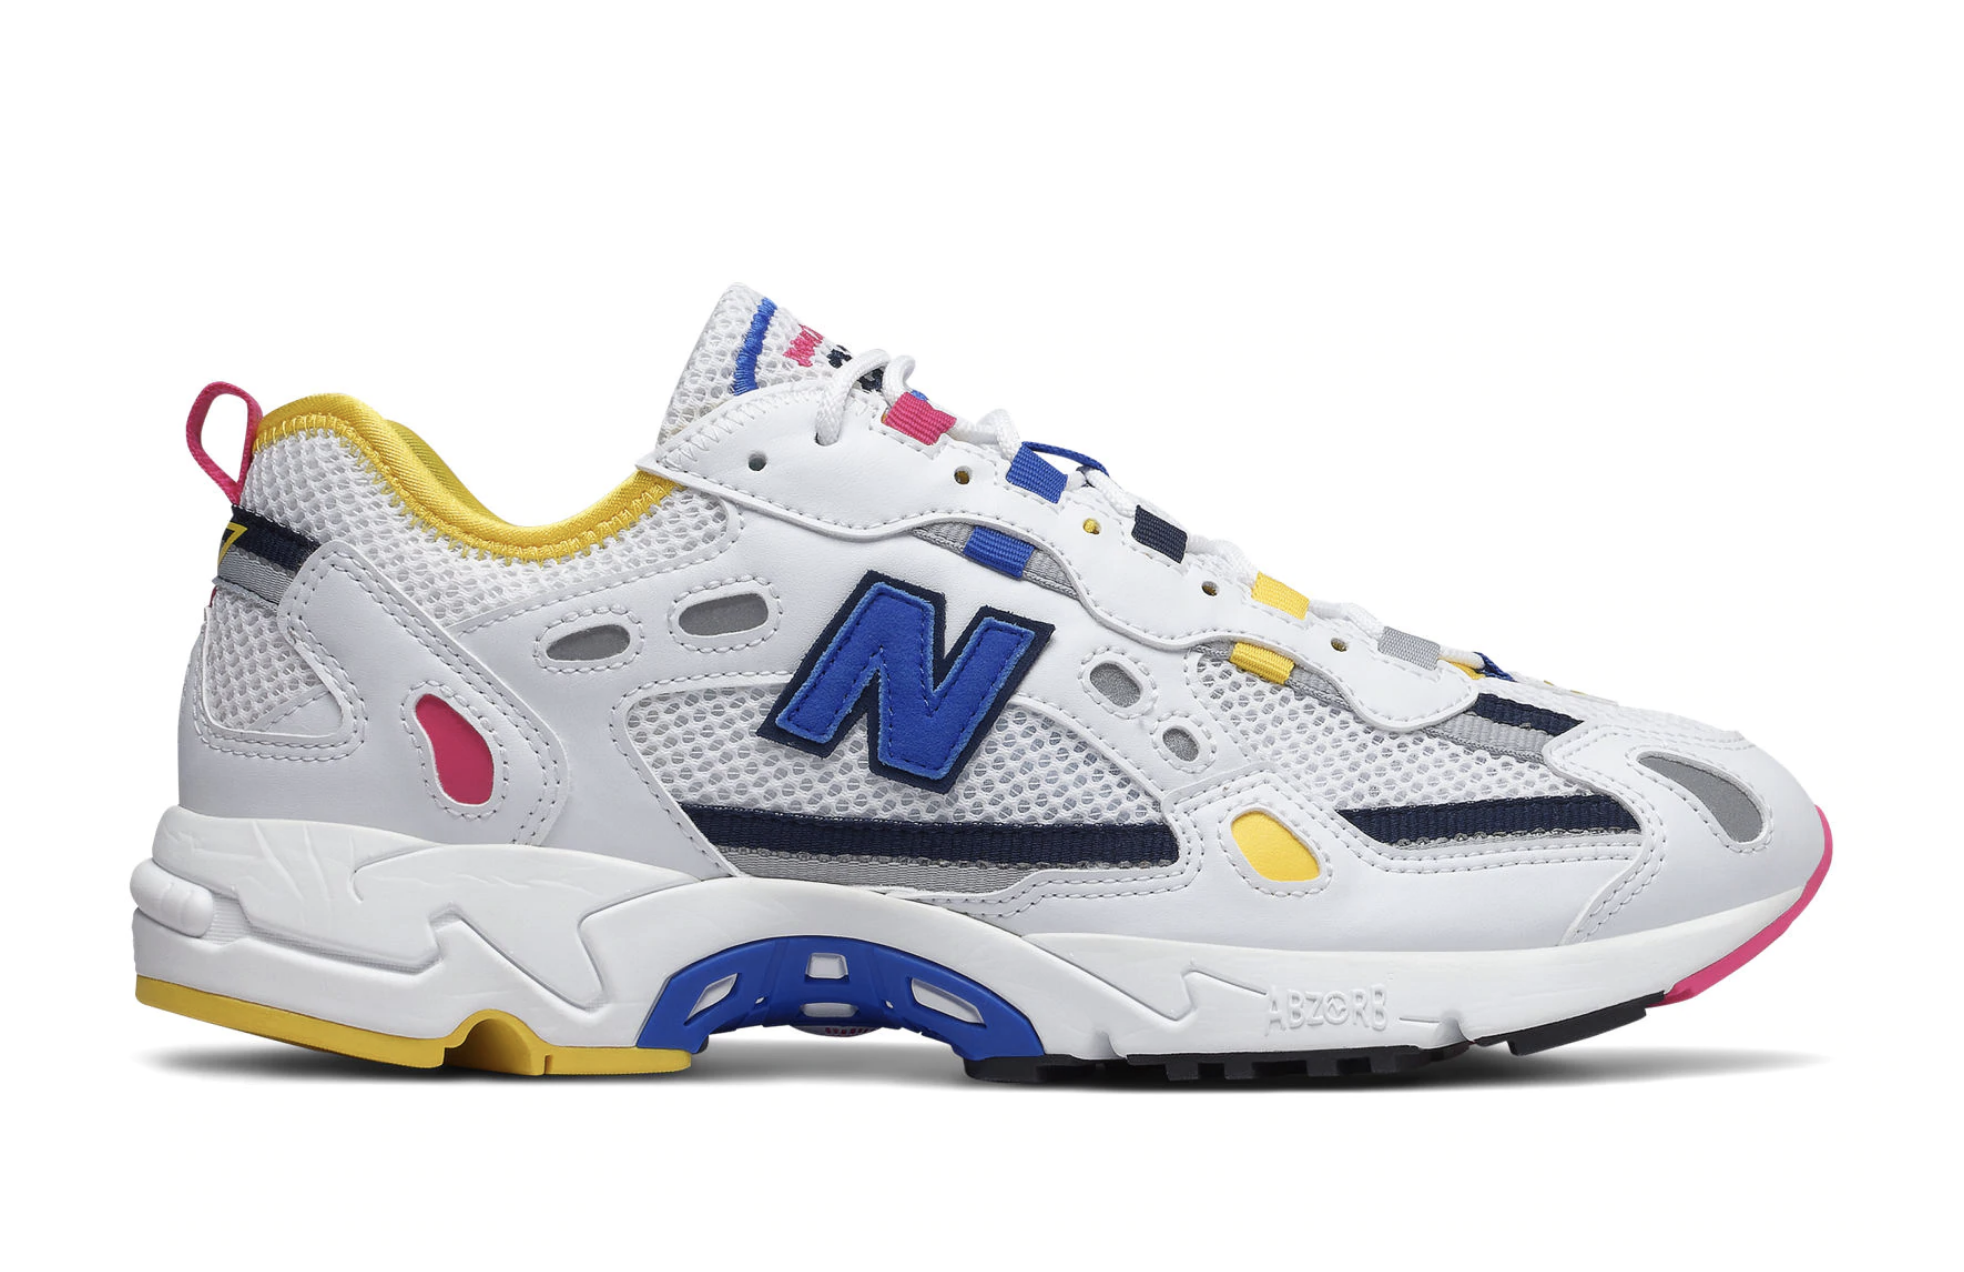 New Balance 827, releases